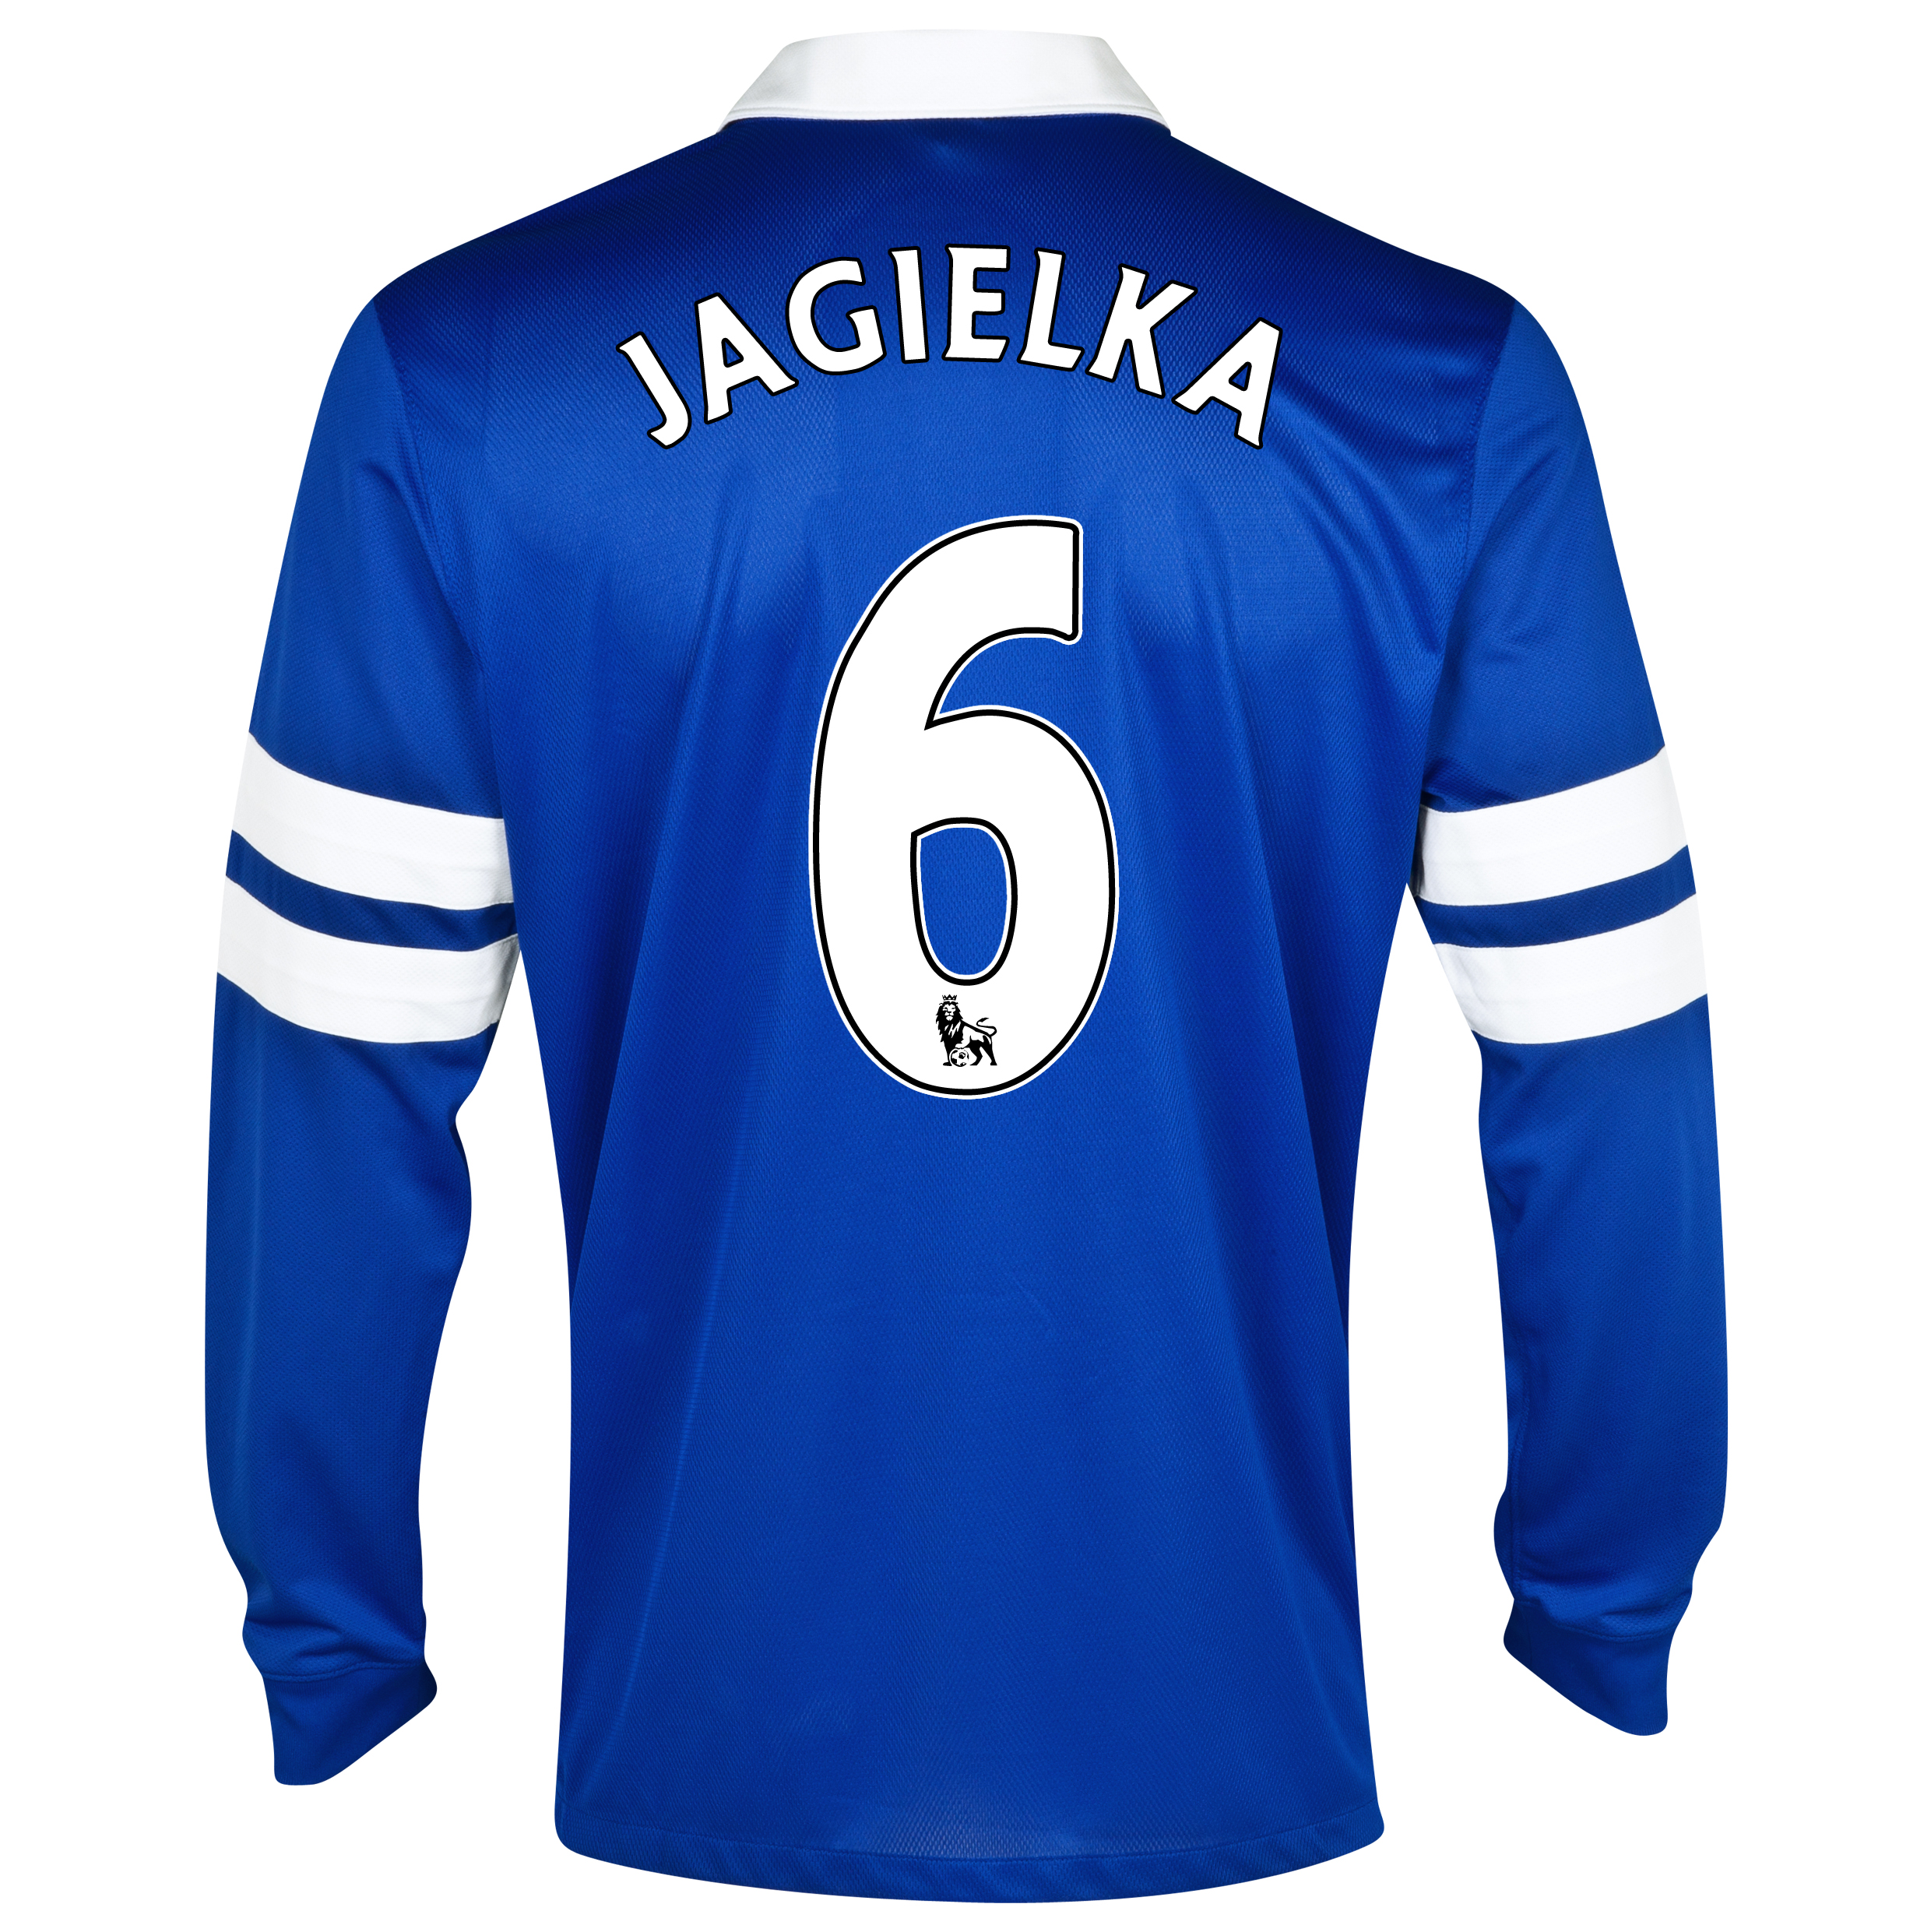 Everton Home Shirt 2013/14 - Long Sleeved Blue with Jagielka 6 printing